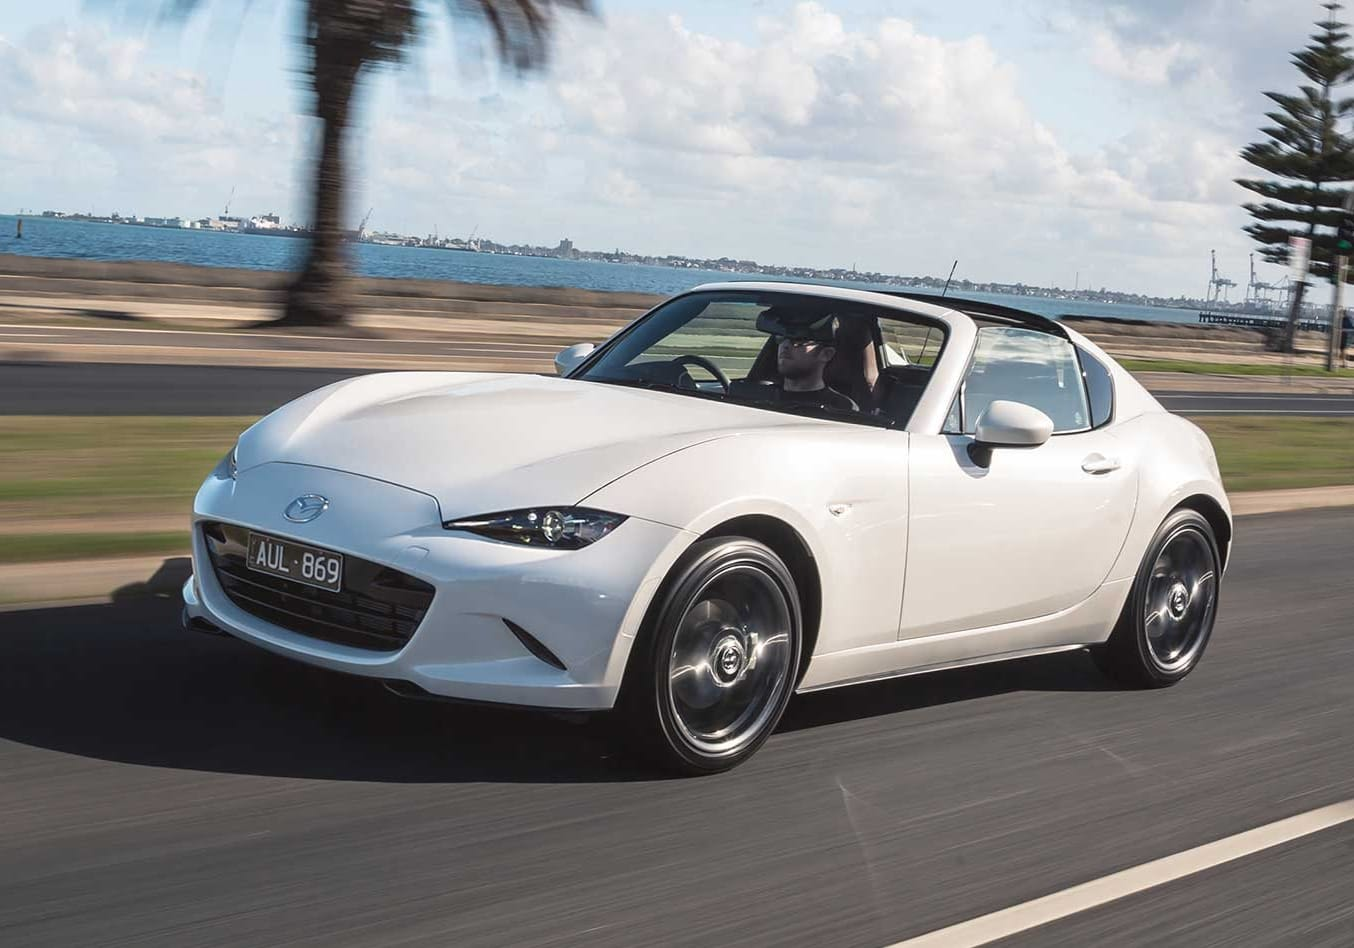 2019 Mazda MX-5 RF automatic performance review